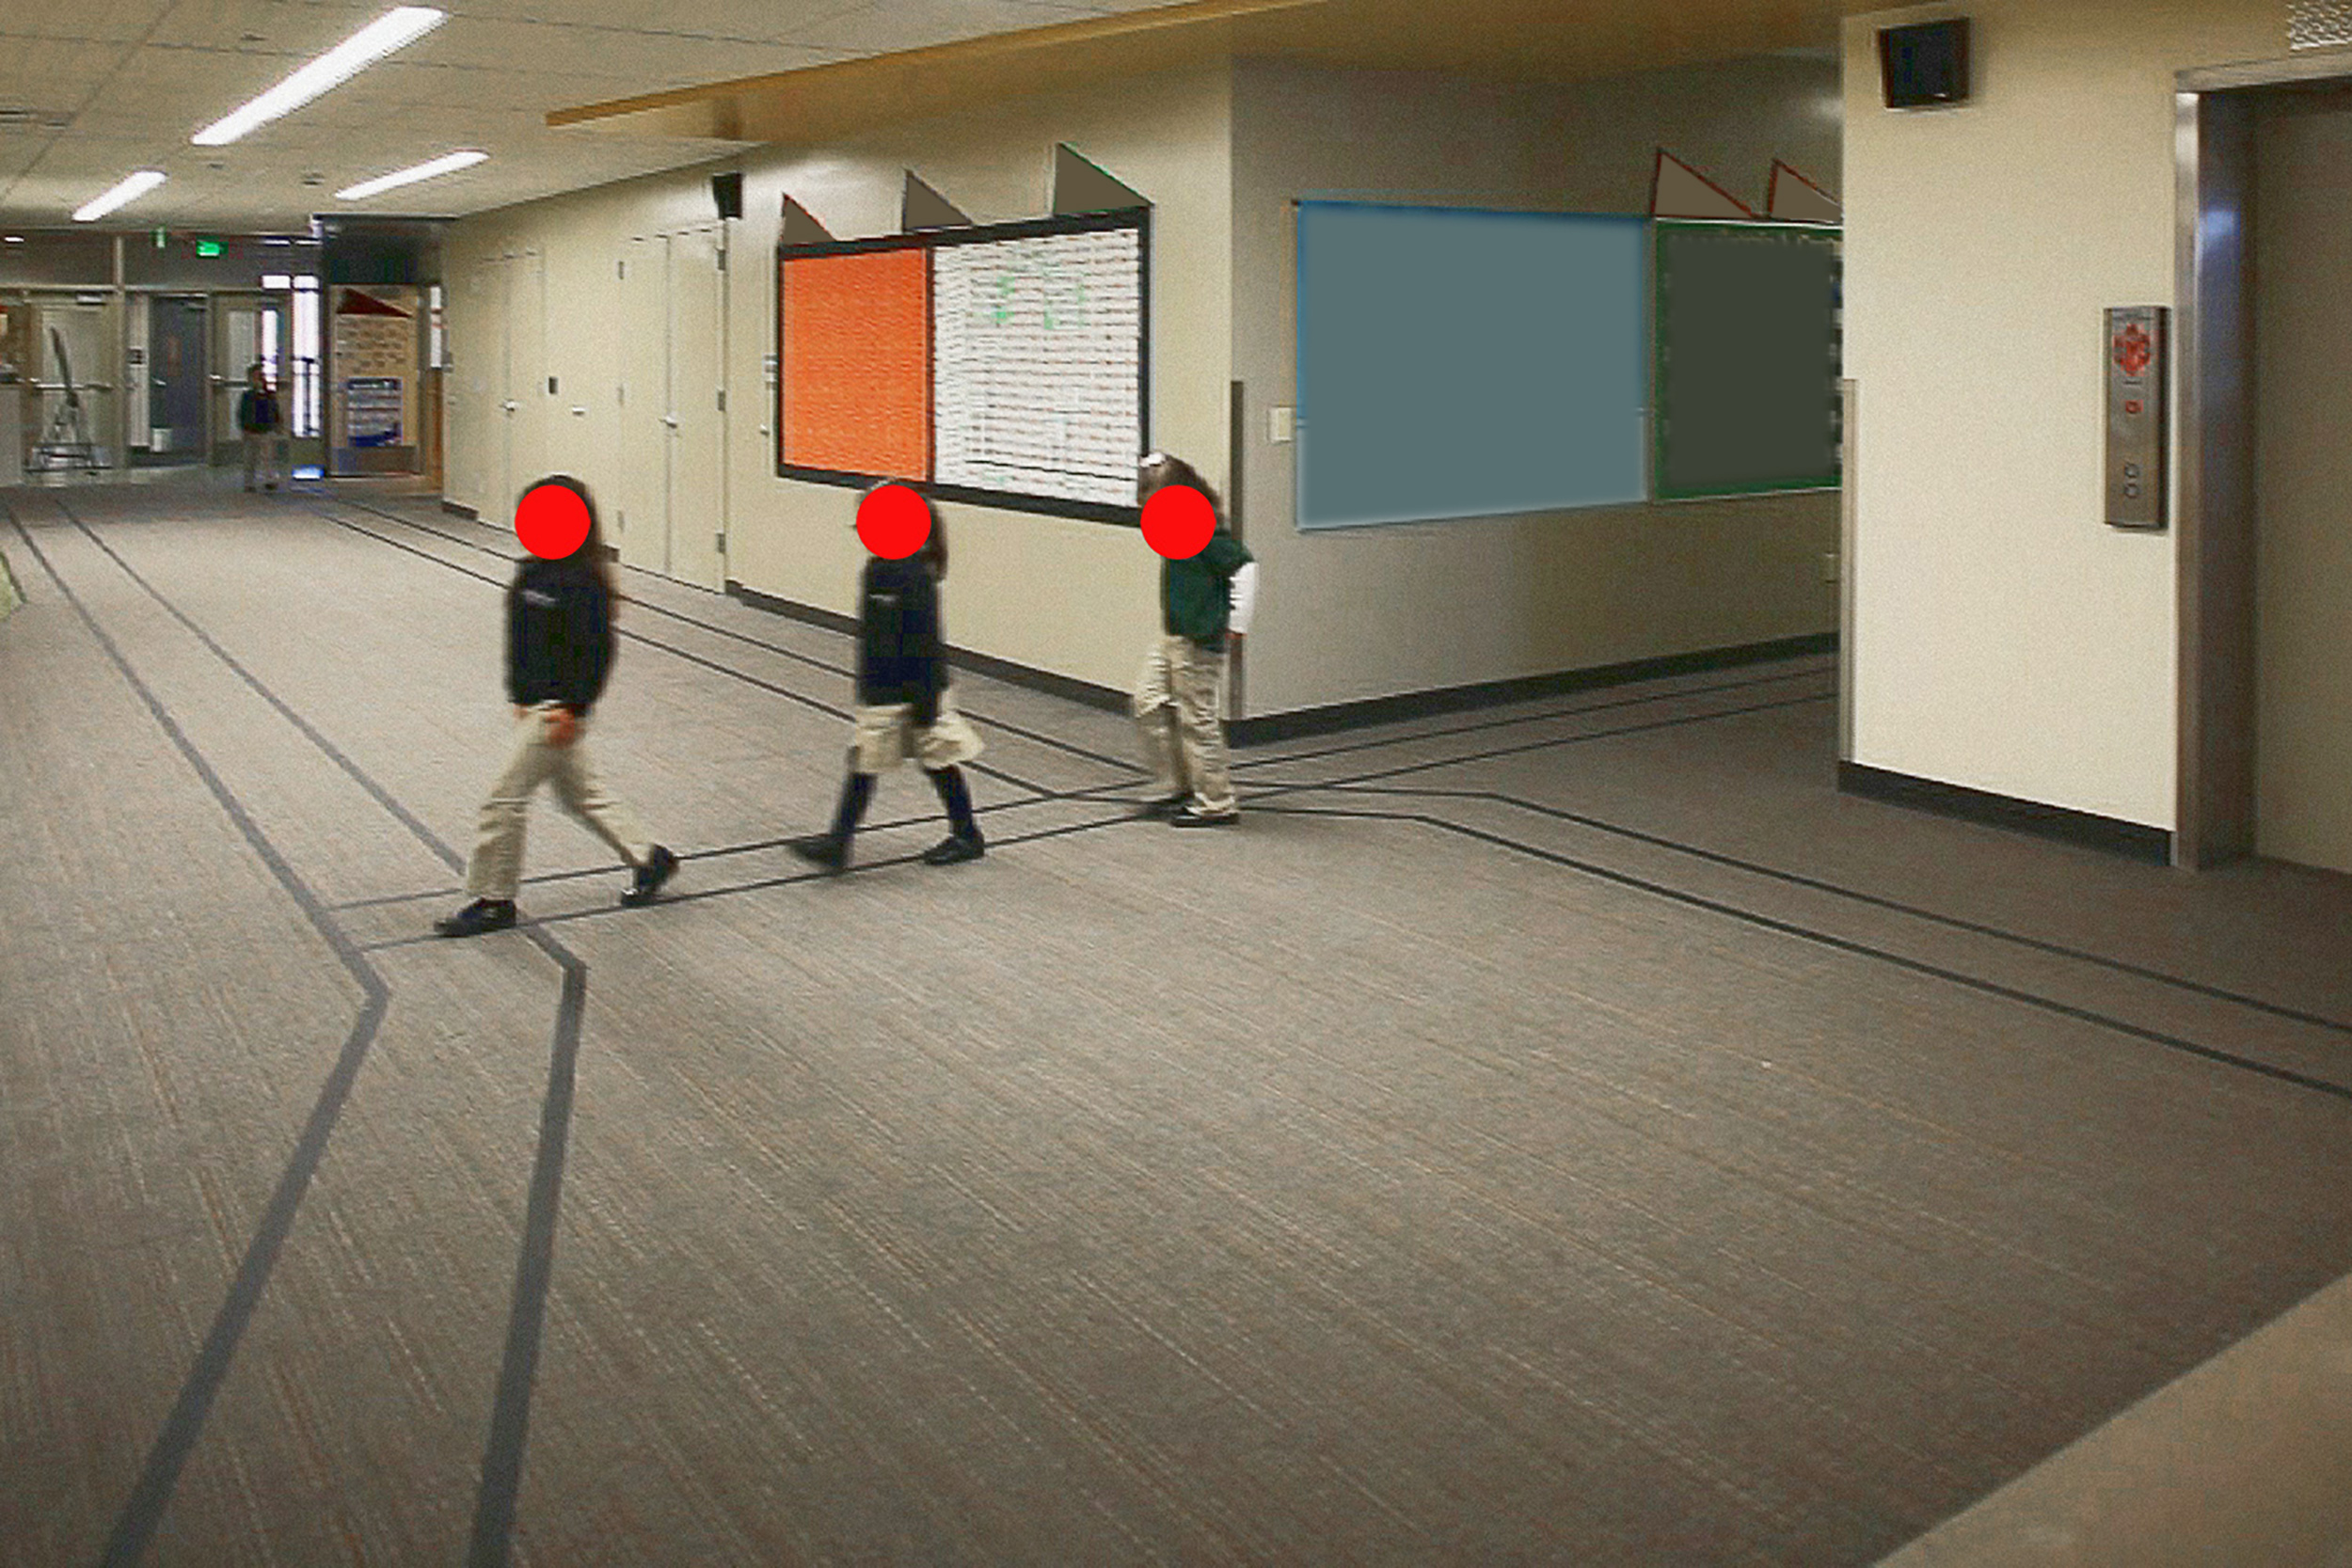 PUBLIC CHARTER SCHOOL, WHERE CHILDREN ARE INSTRUCTED TO WALK BETWEEN TAPED LINES